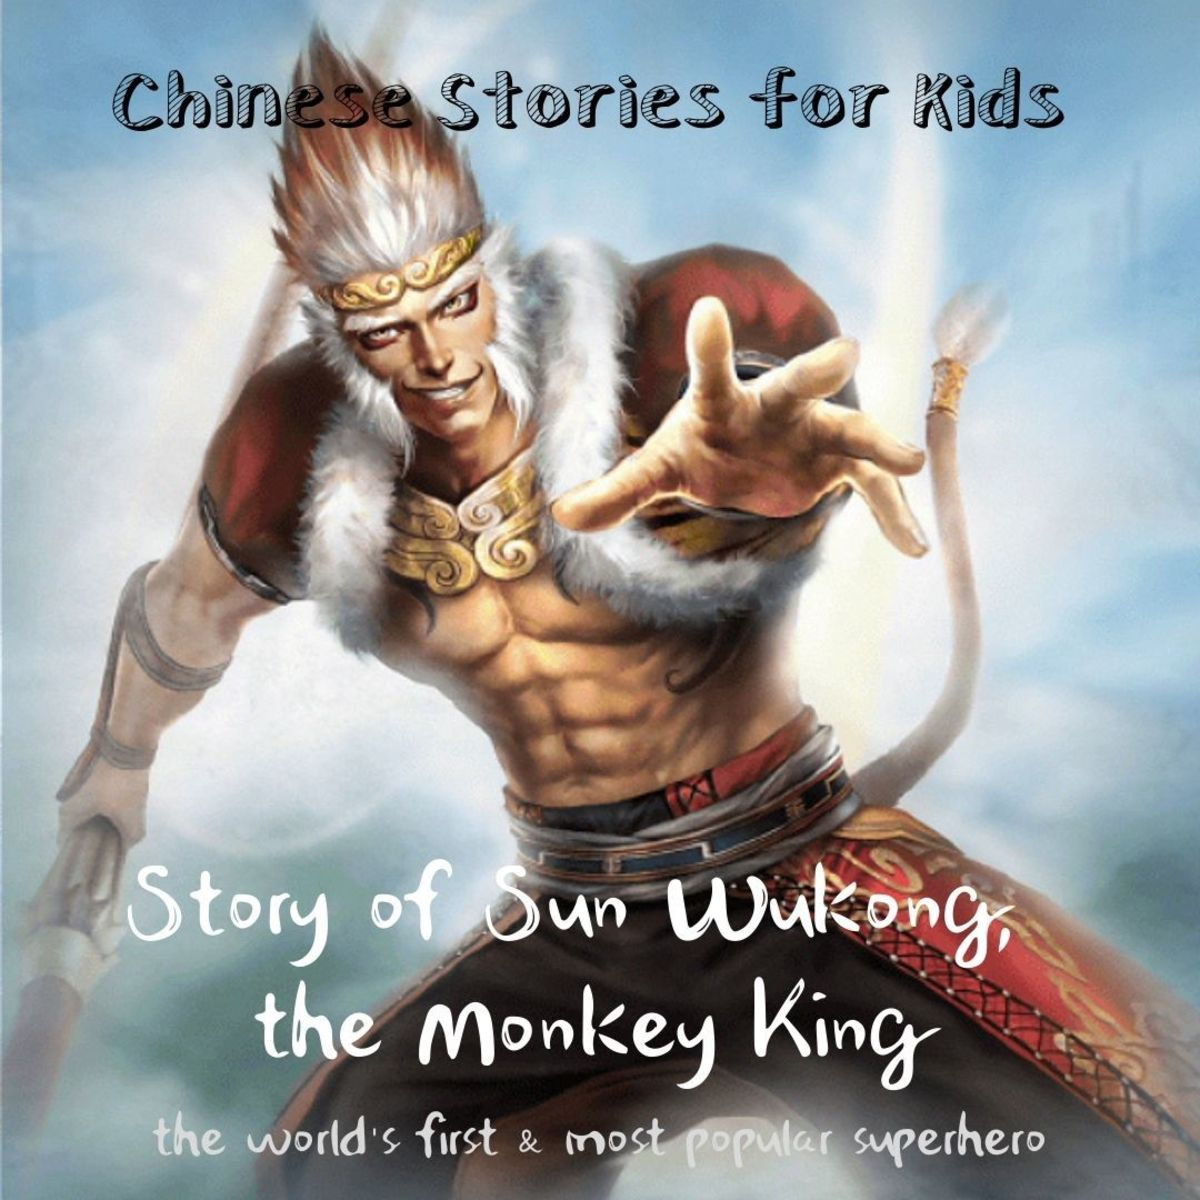 Sun Wukong, the Monkey King: The most famous Chinese legendary mythical figure